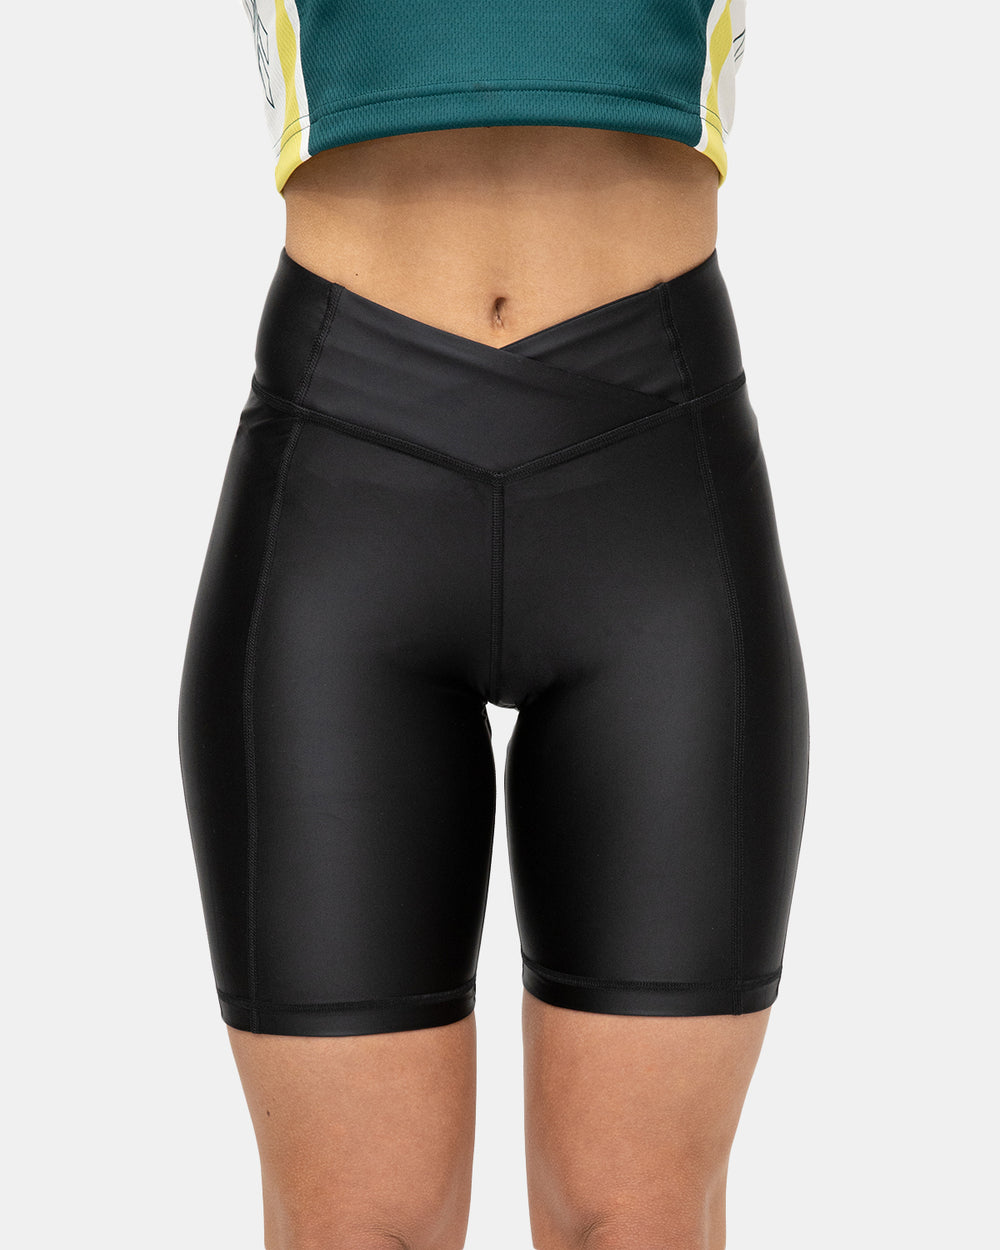 Reebok - Women's Studio High-Rise Shorts (Black)